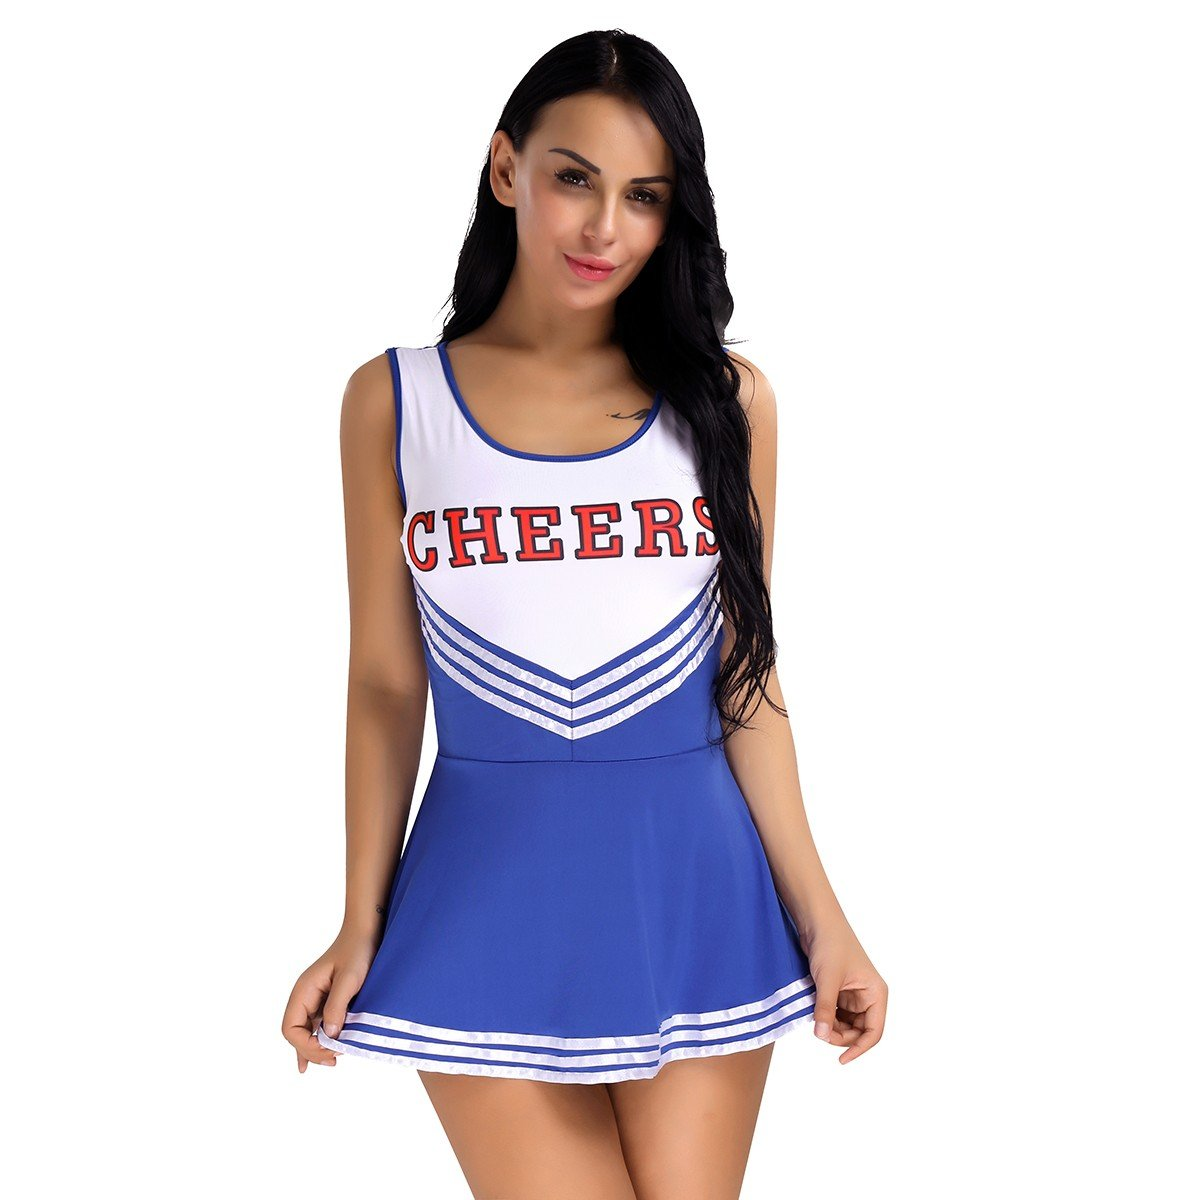 TiaoBug Costume de Deguisement Pom-pom Girl Robe Fille Débardeur Cheerleaders Uniforme S-XL